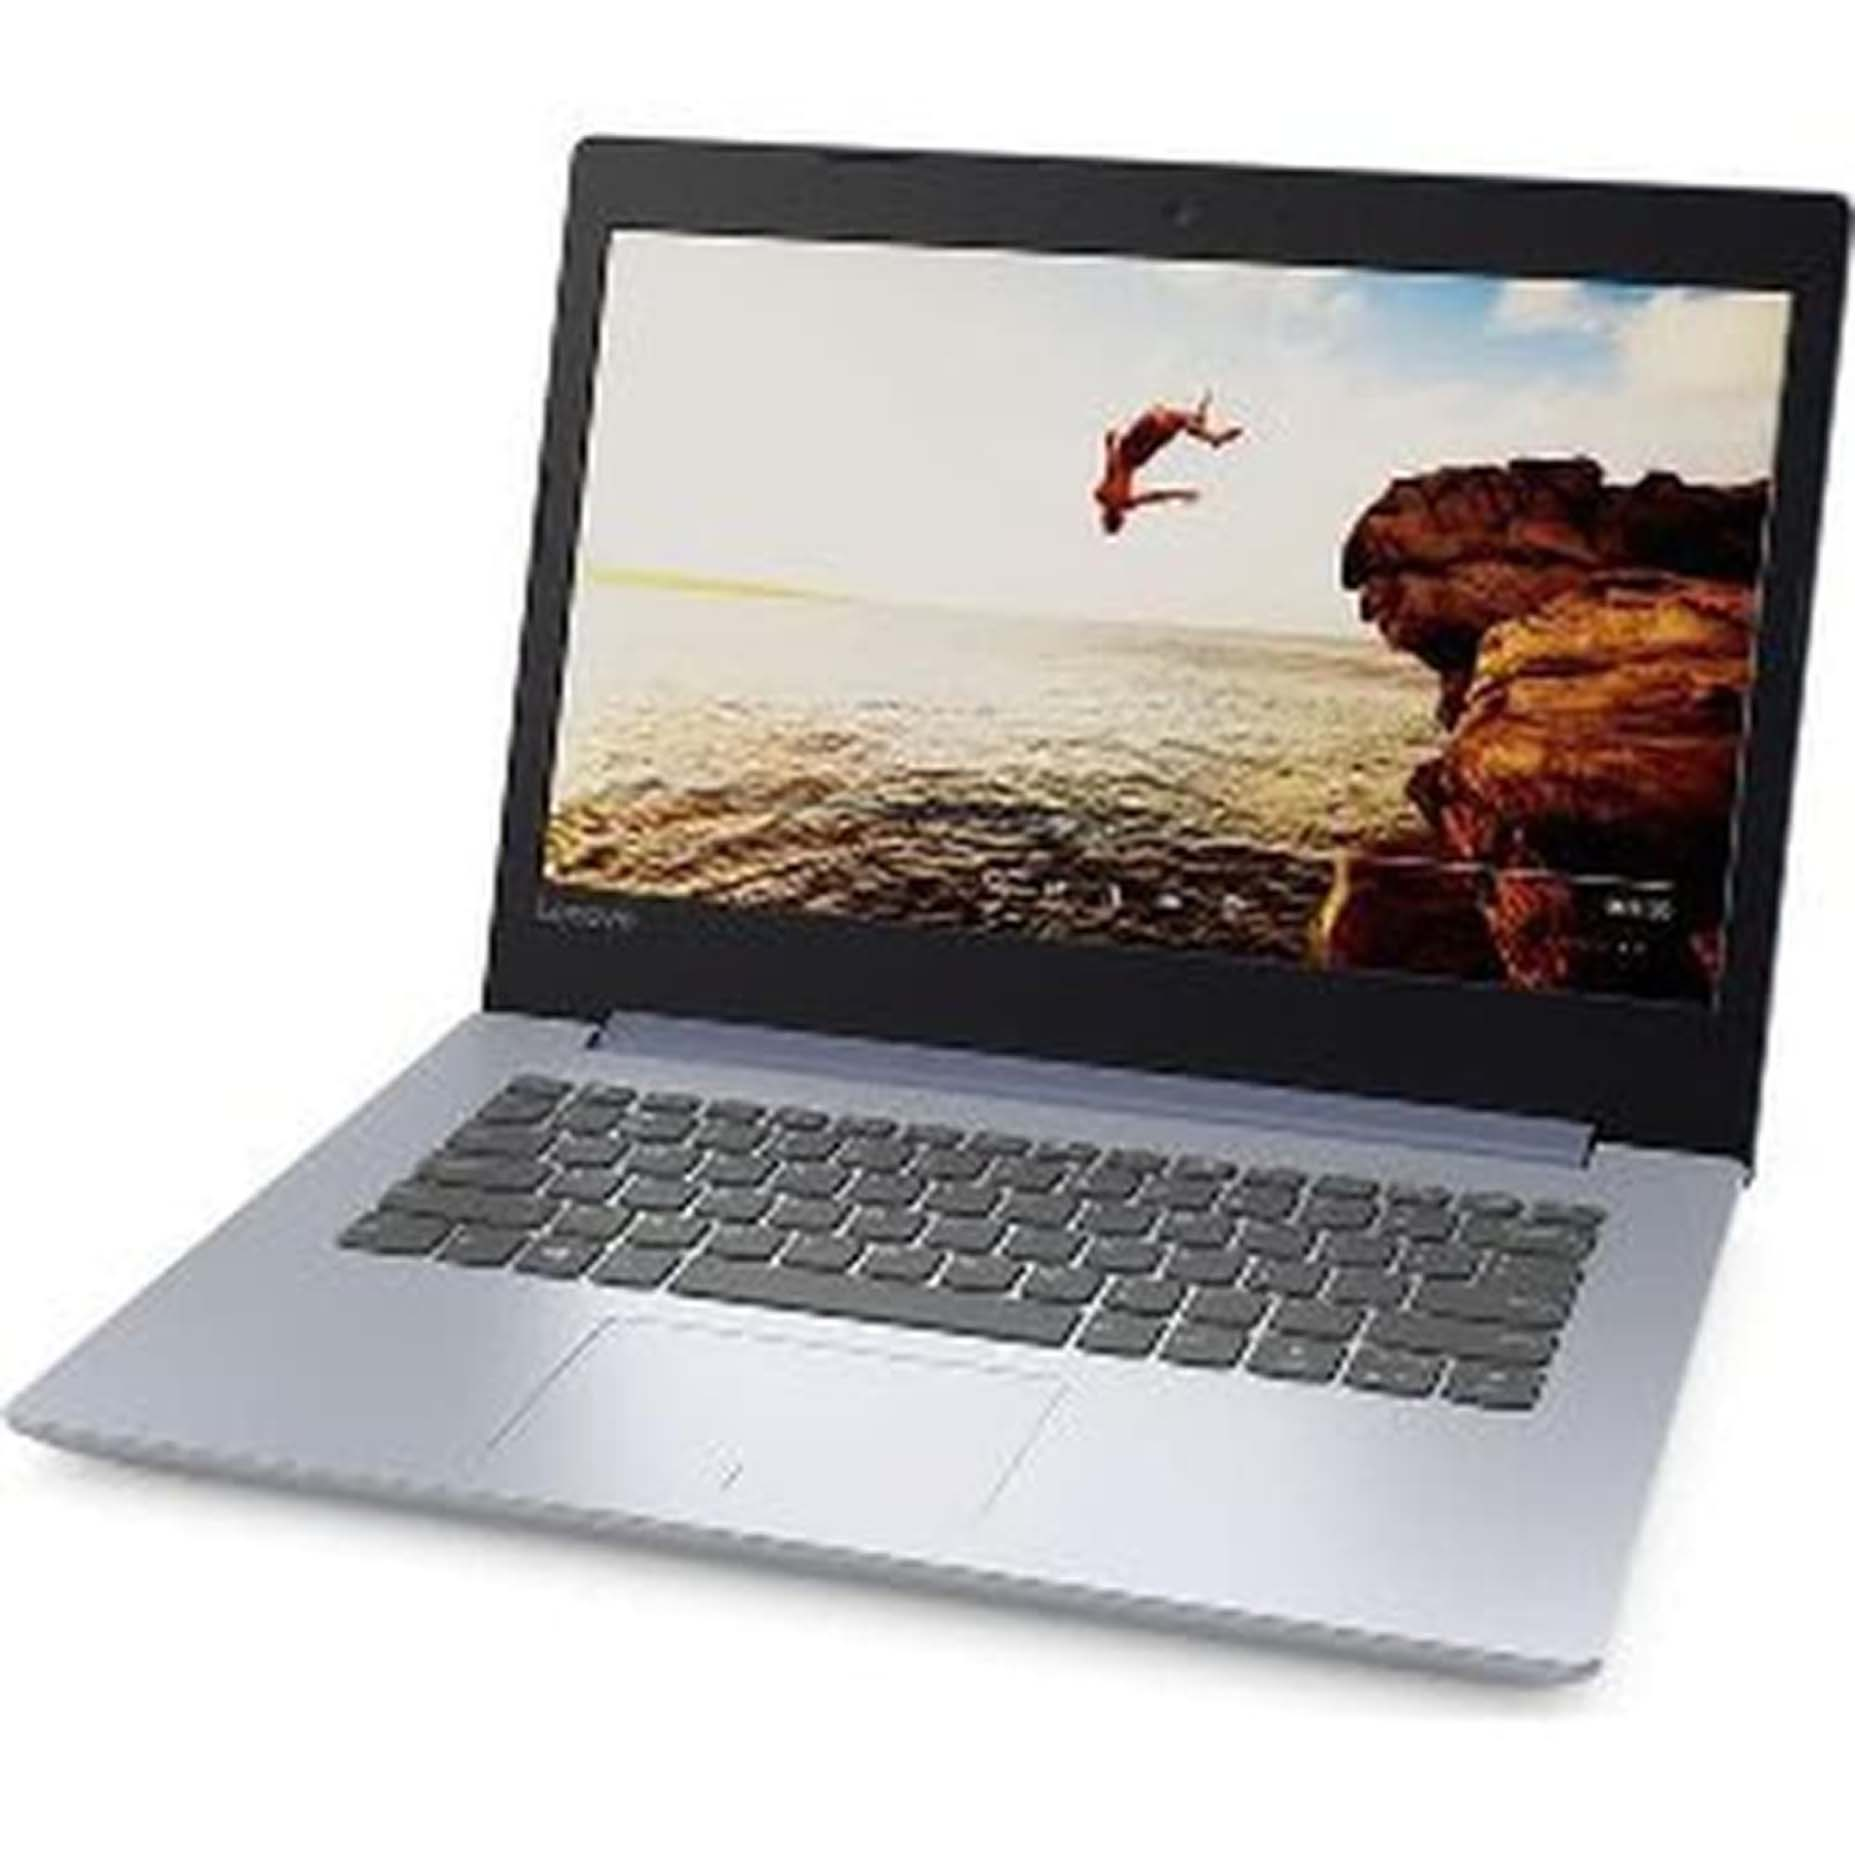 Harga Lenovo Ideapad IP320-14ISK 86ID Laptop Intel Core i3-6006U 4GB 1TB Integrated Windows 10 14 Inch Platinum Grey